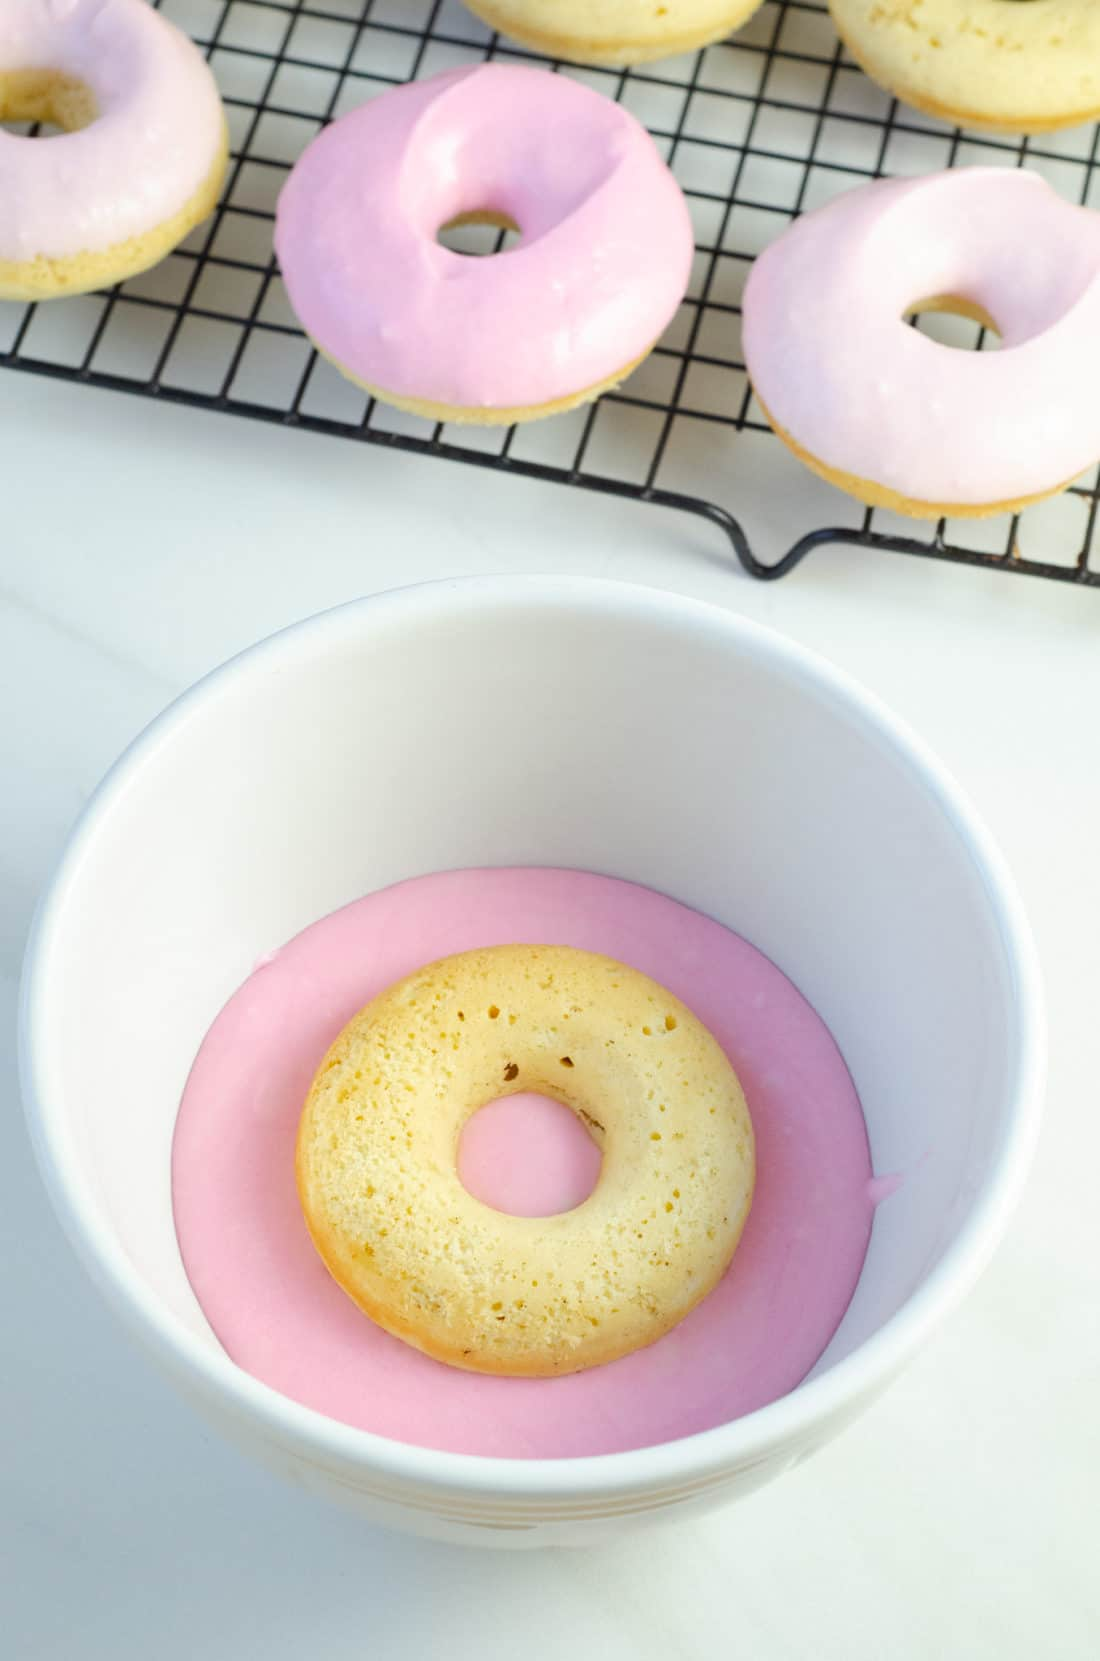 Baked Vanilla Donuts Dropped In Vanilla Glaze. Baked Vanilla Donuts are perfect for any occasion, Valentine's Day treats or birthday sweets, the possibilities are endless.